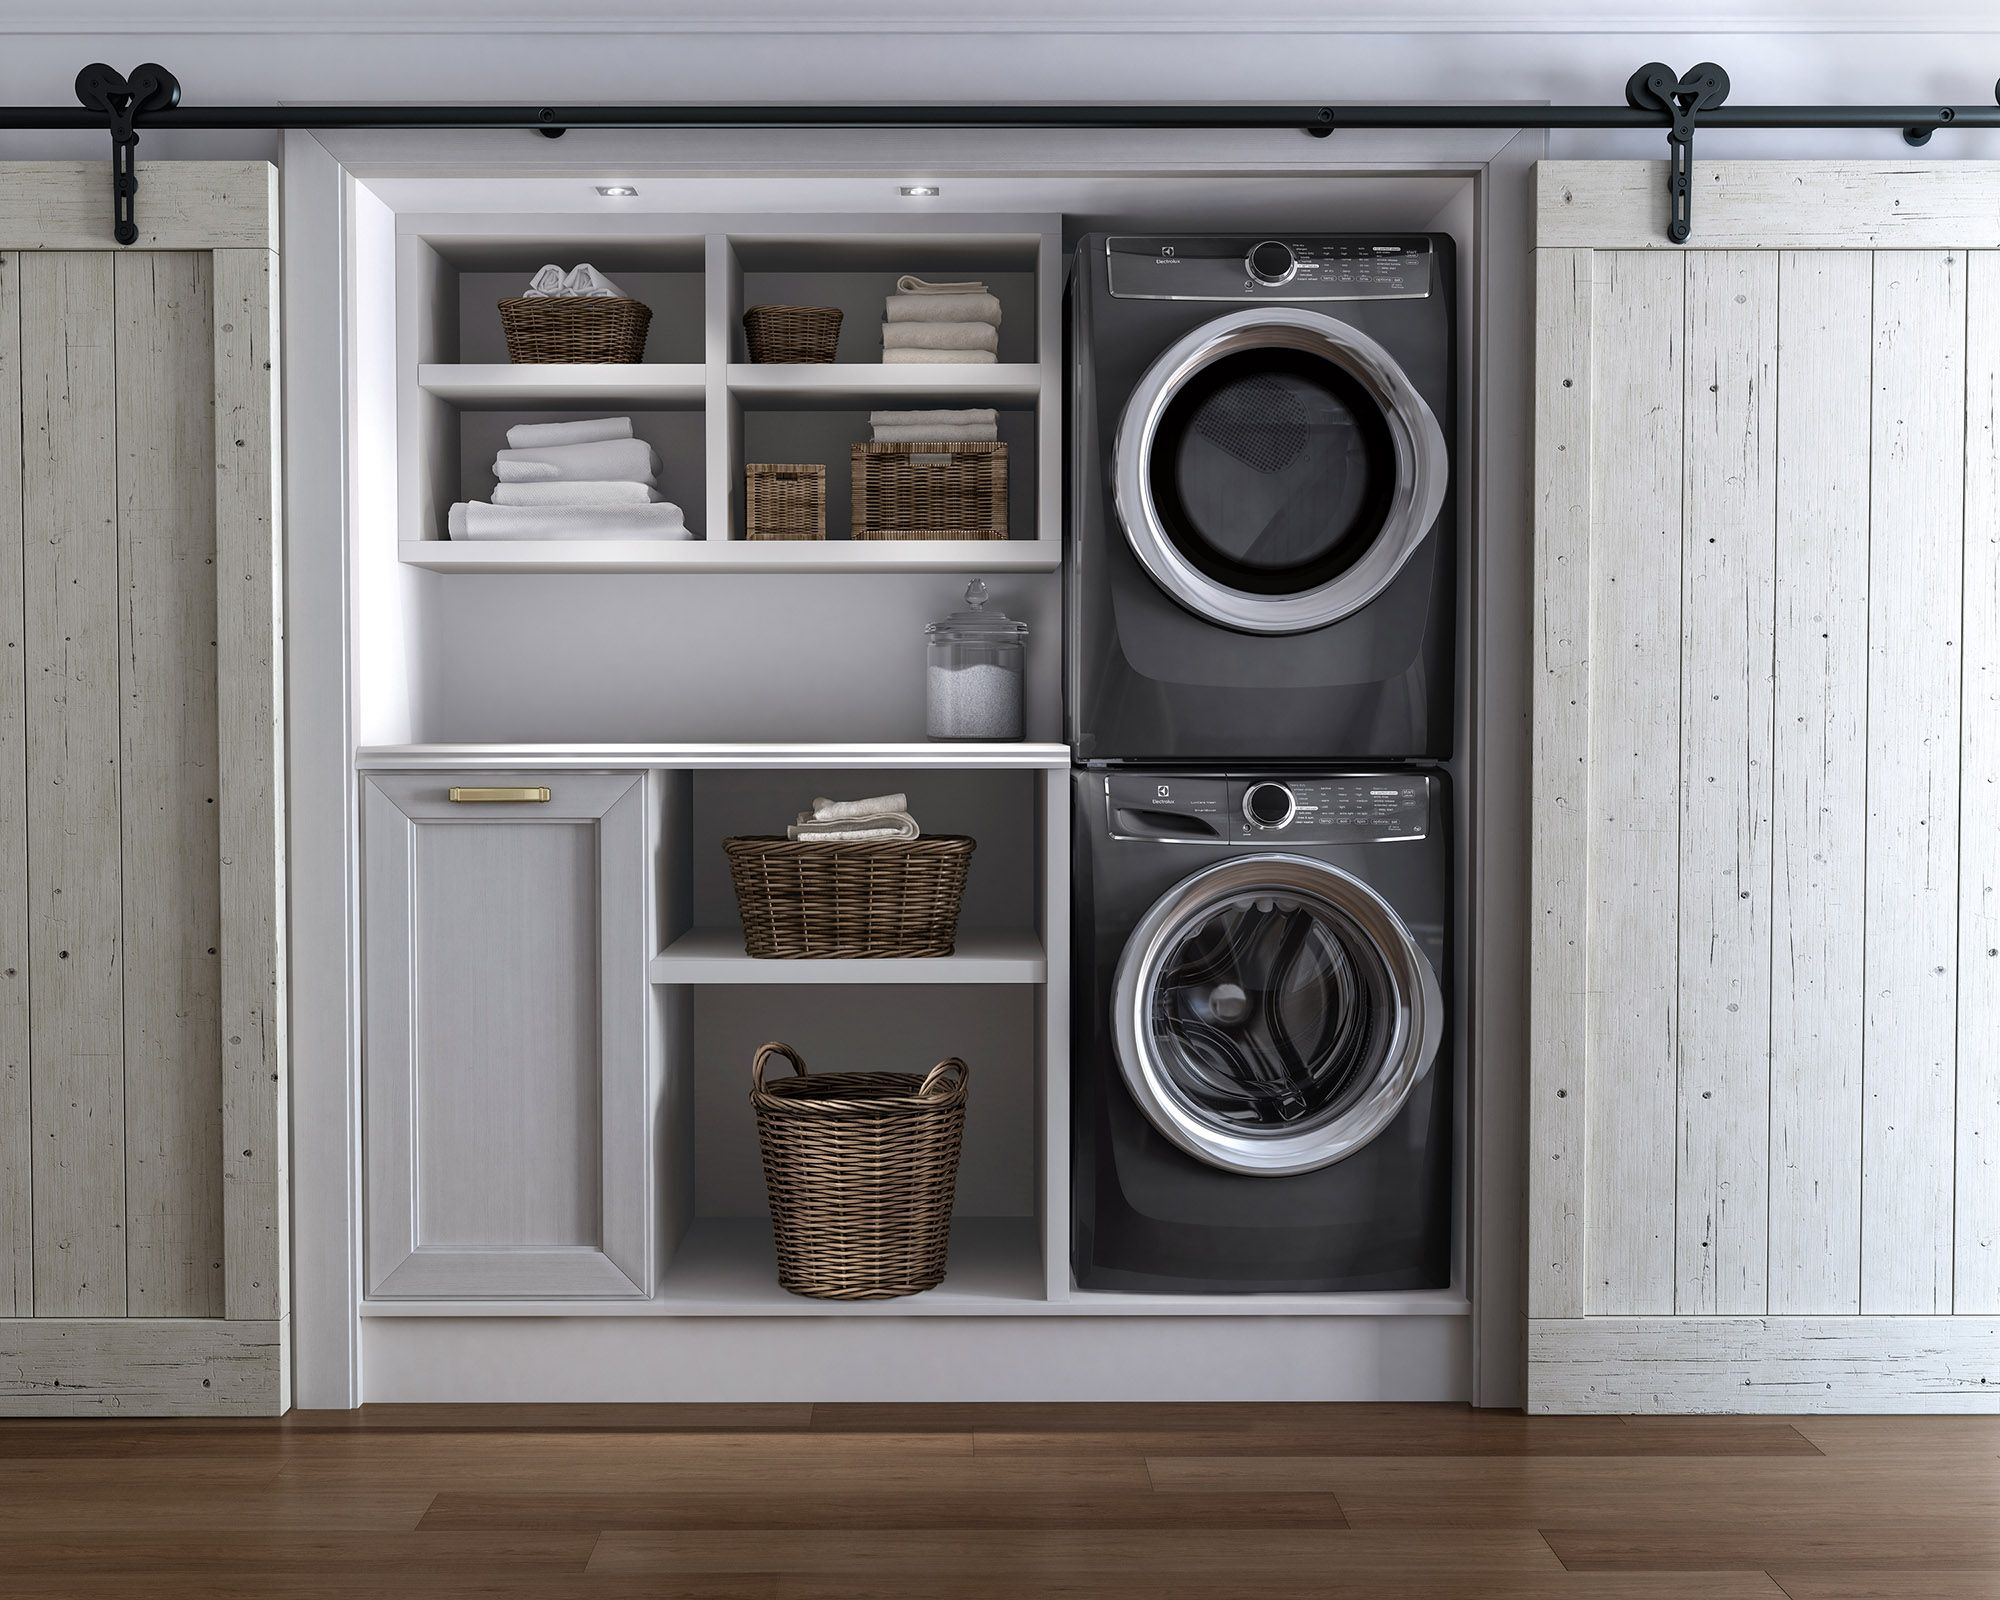 Stacked Washer Dryer Transform The Way You Do Laundry